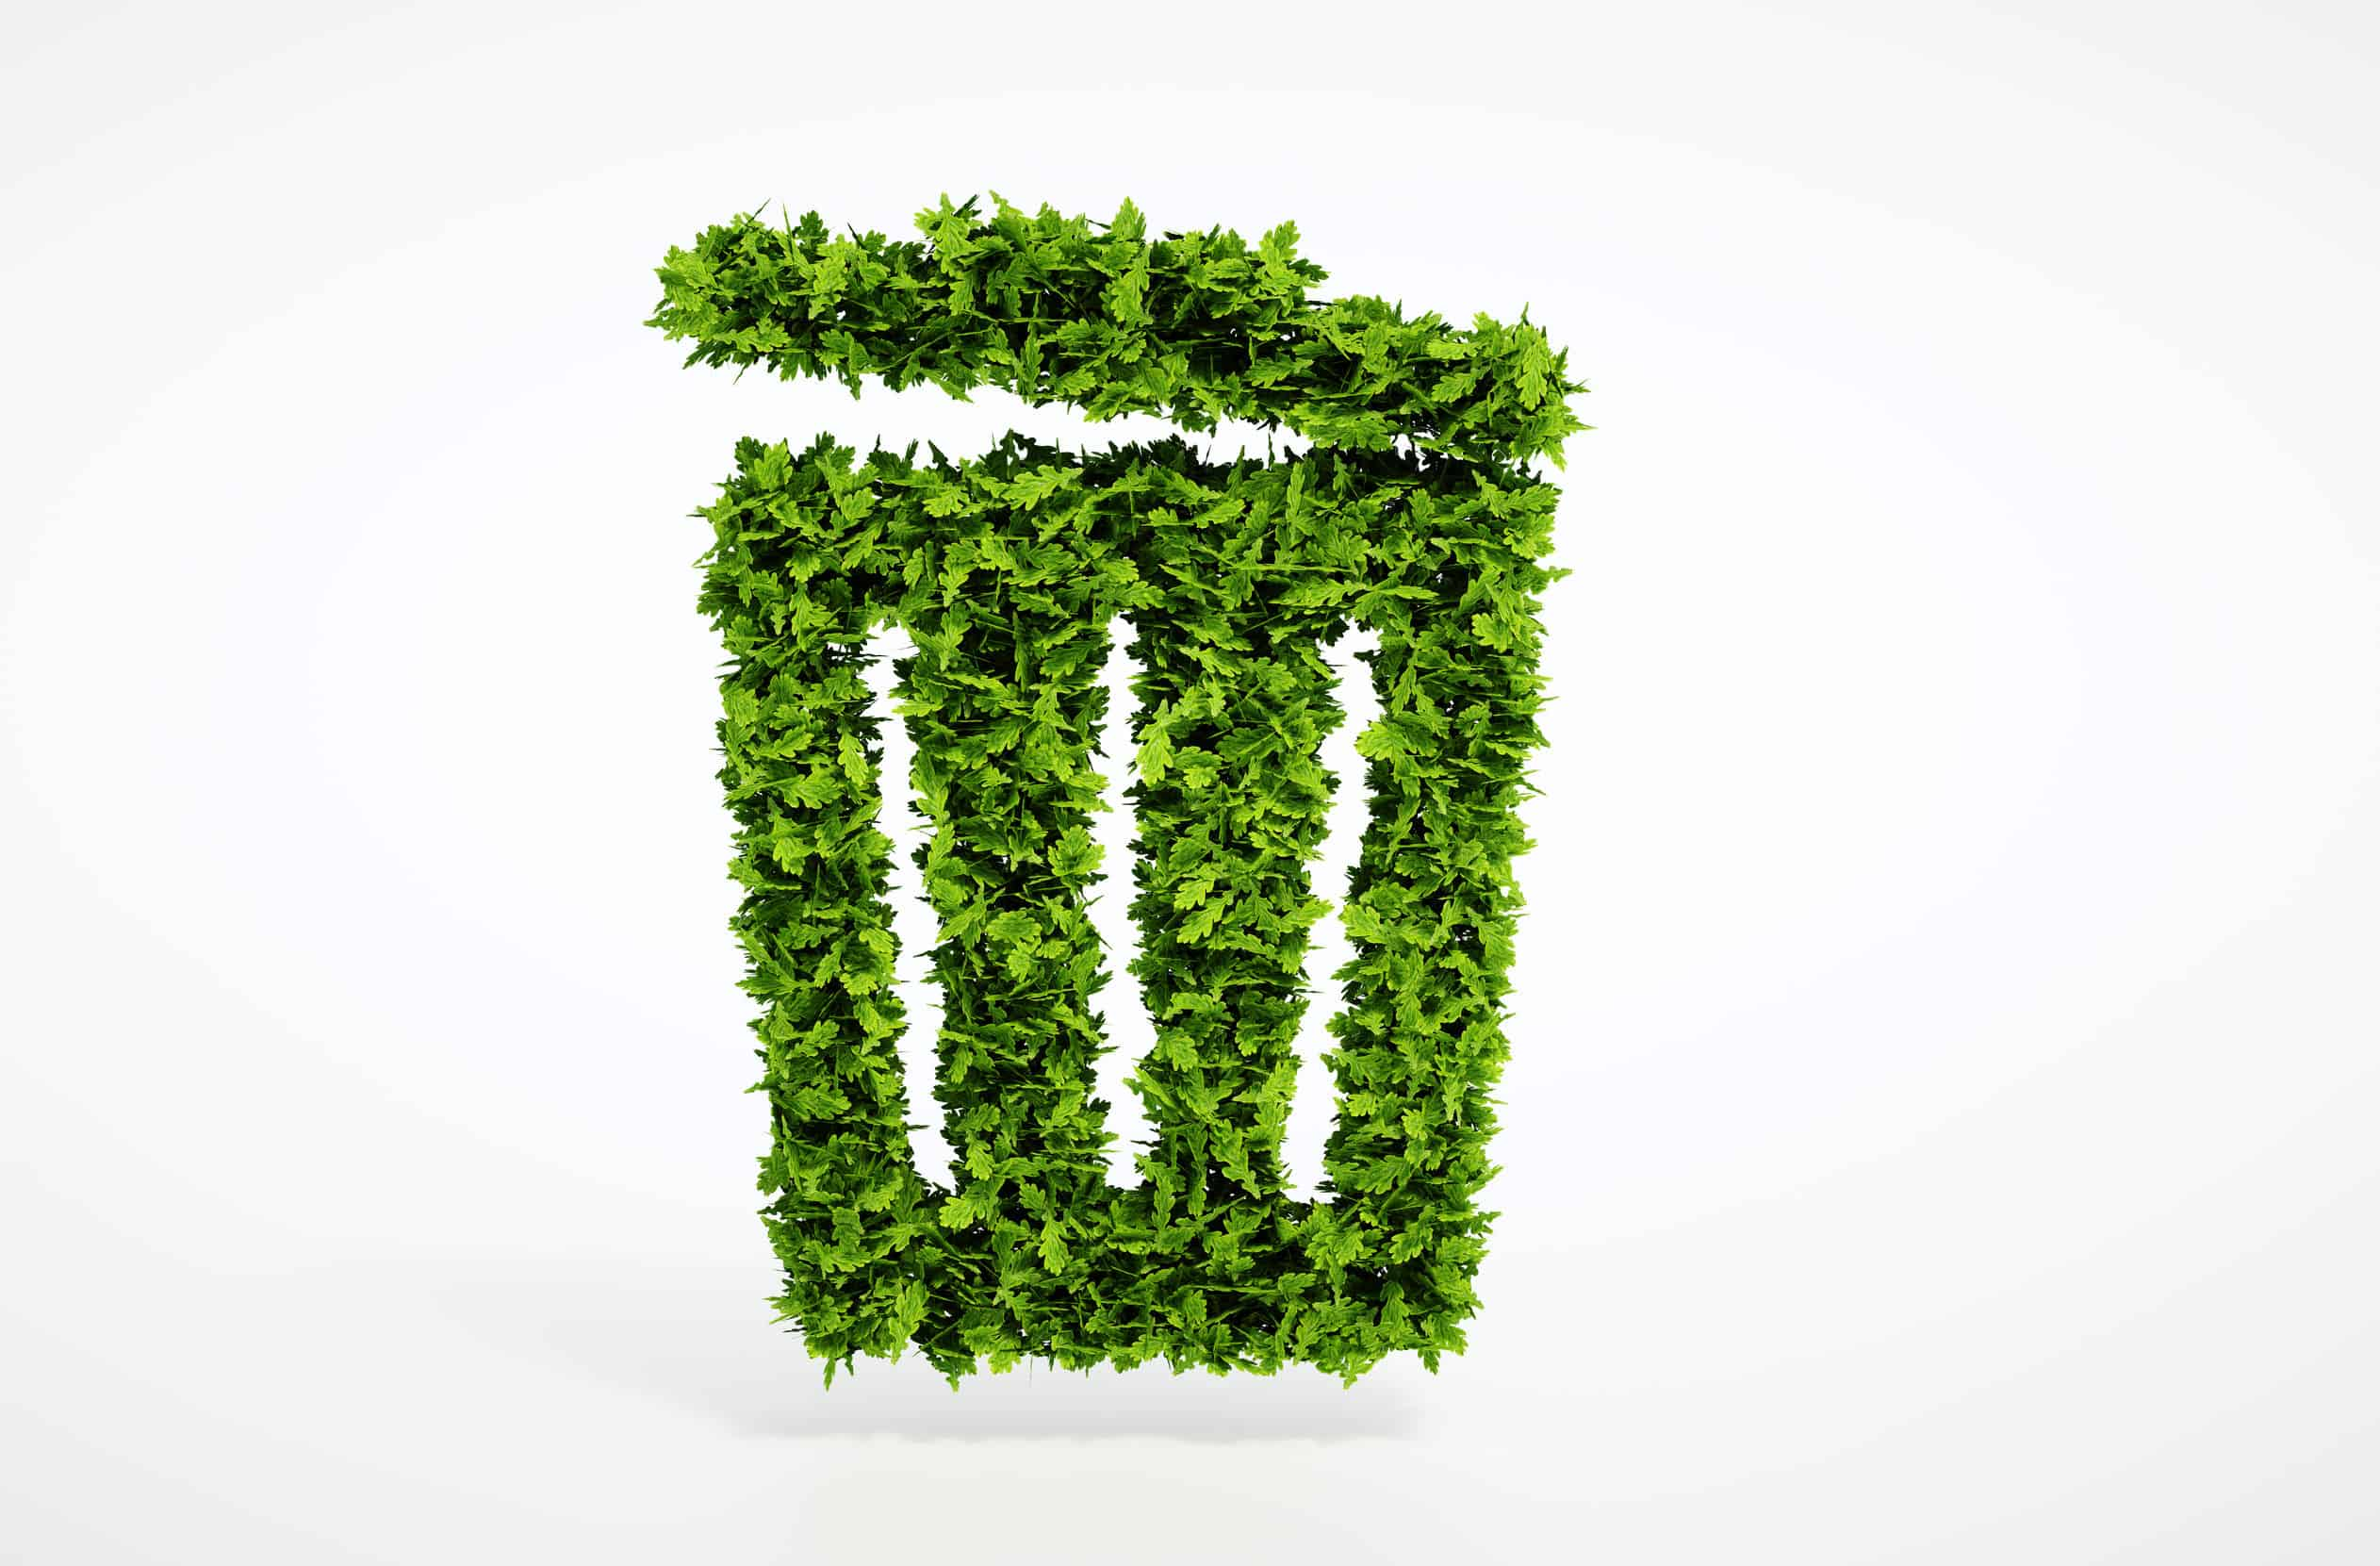 32522009 - isolated 3d render ecology trash can concept with white background